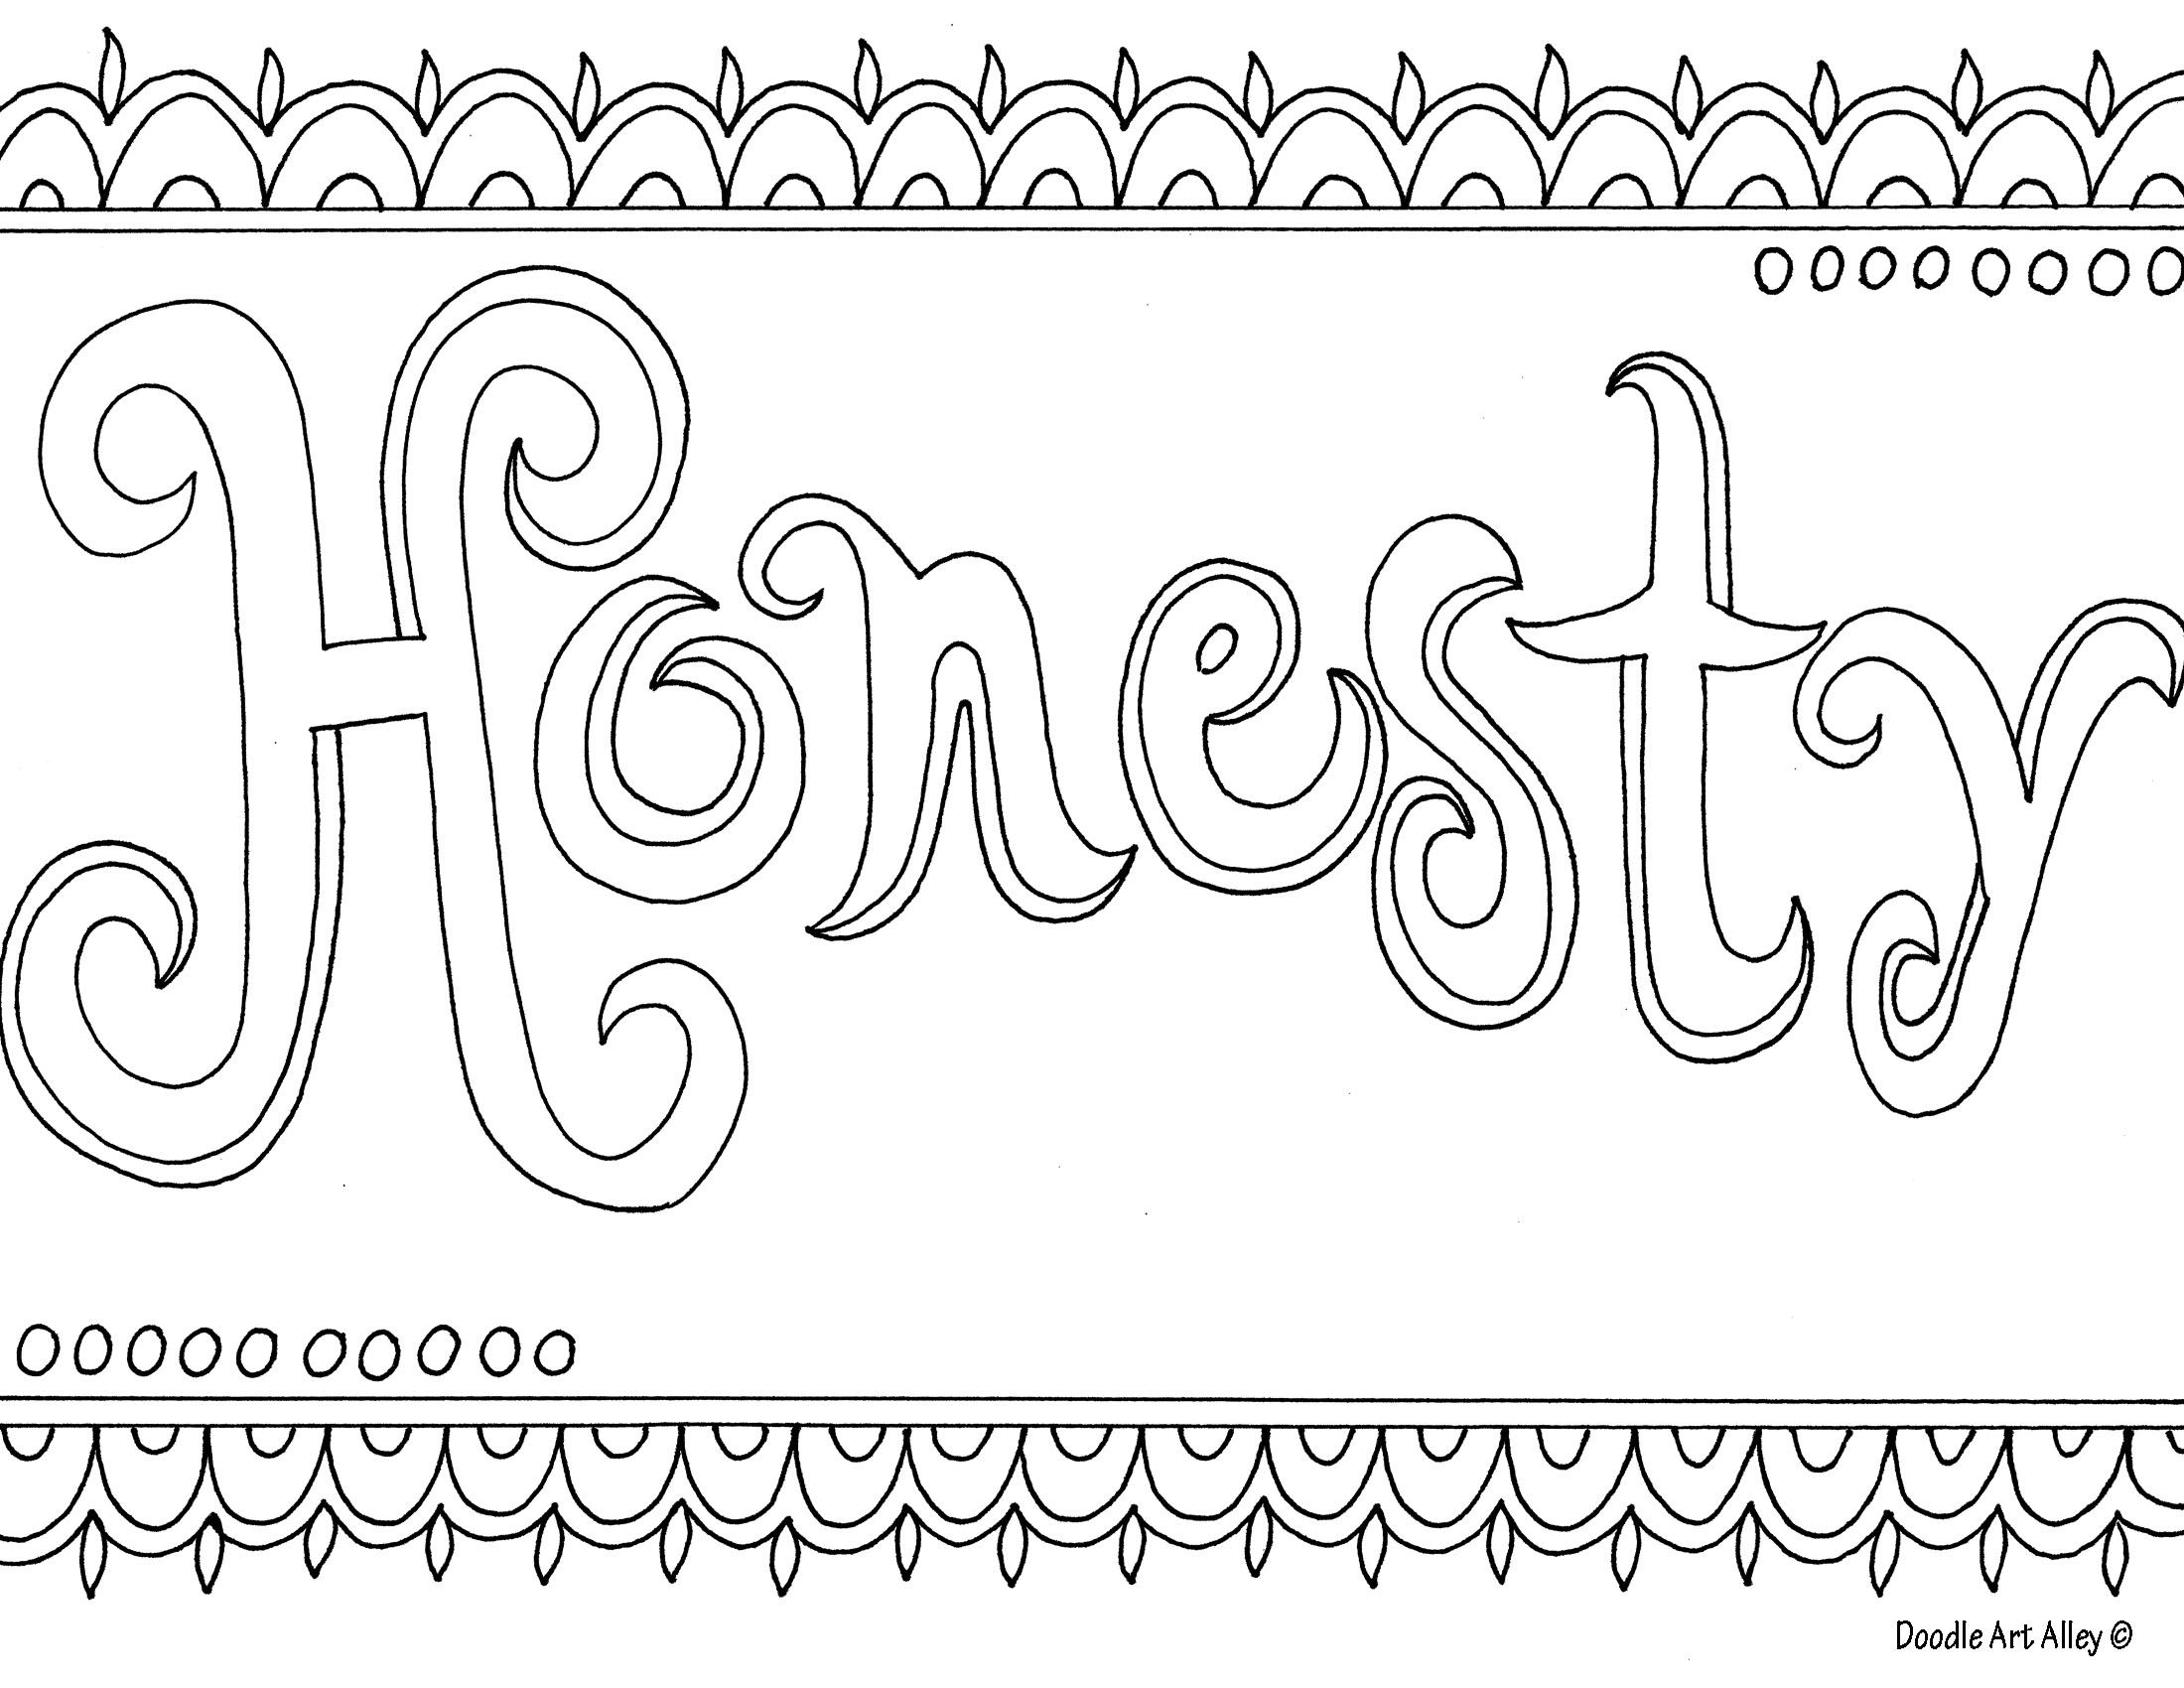 Honesty Coloring Page Bible Coloring Pages Coloring Pages Free Printable Coloring Pages